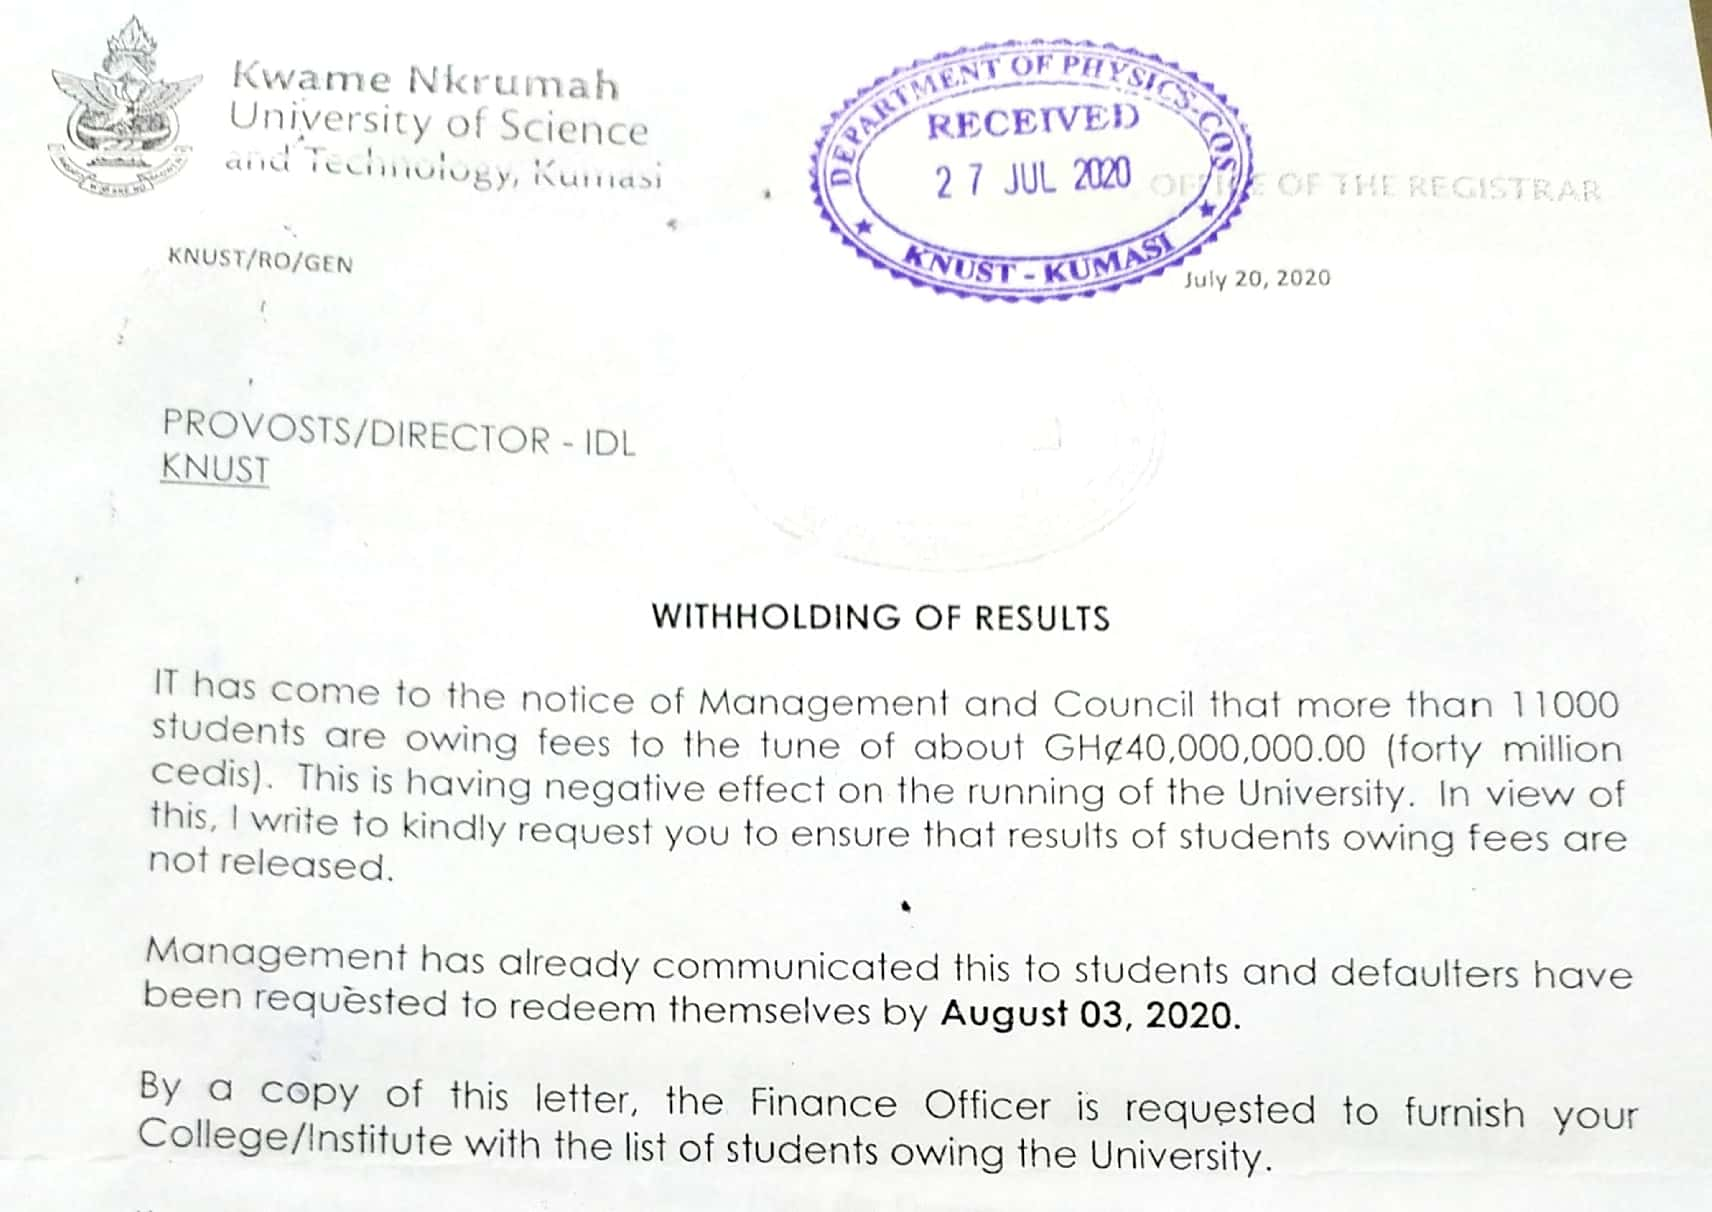 KNUST: Results Of Over 11000 Students To Be Withheld